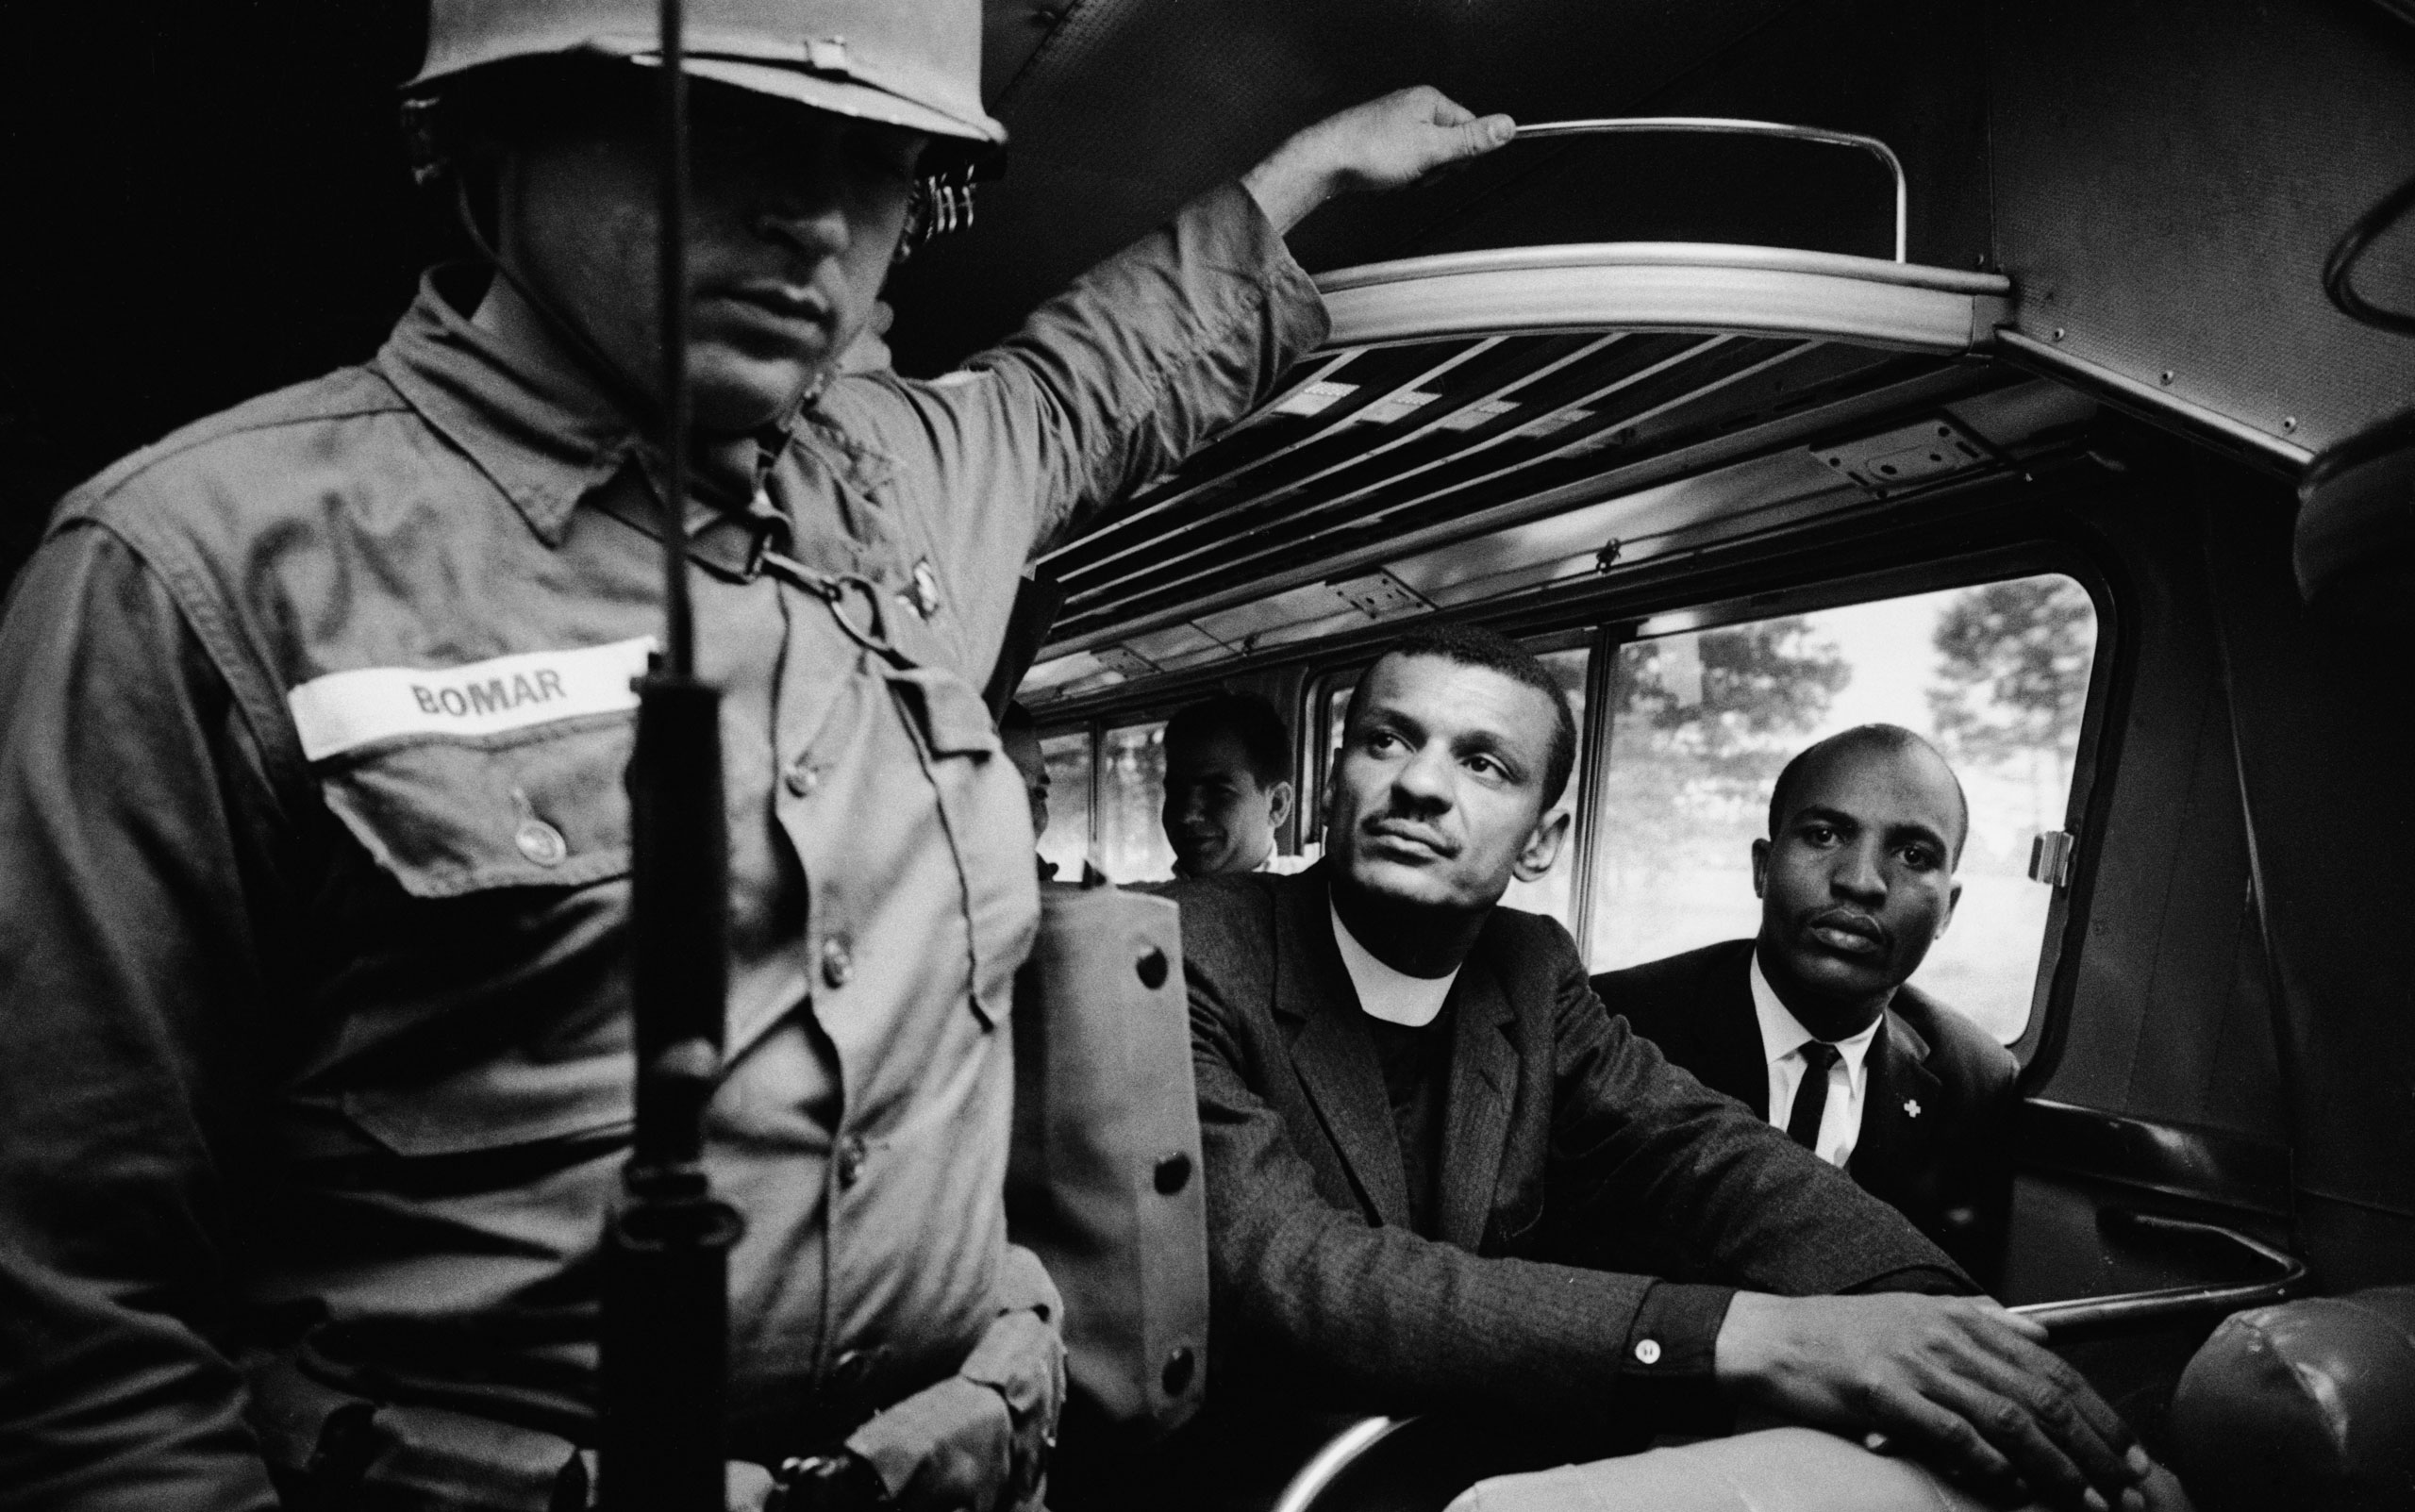 Freedom riders and members of the National Guard on a bus in the Deep South.